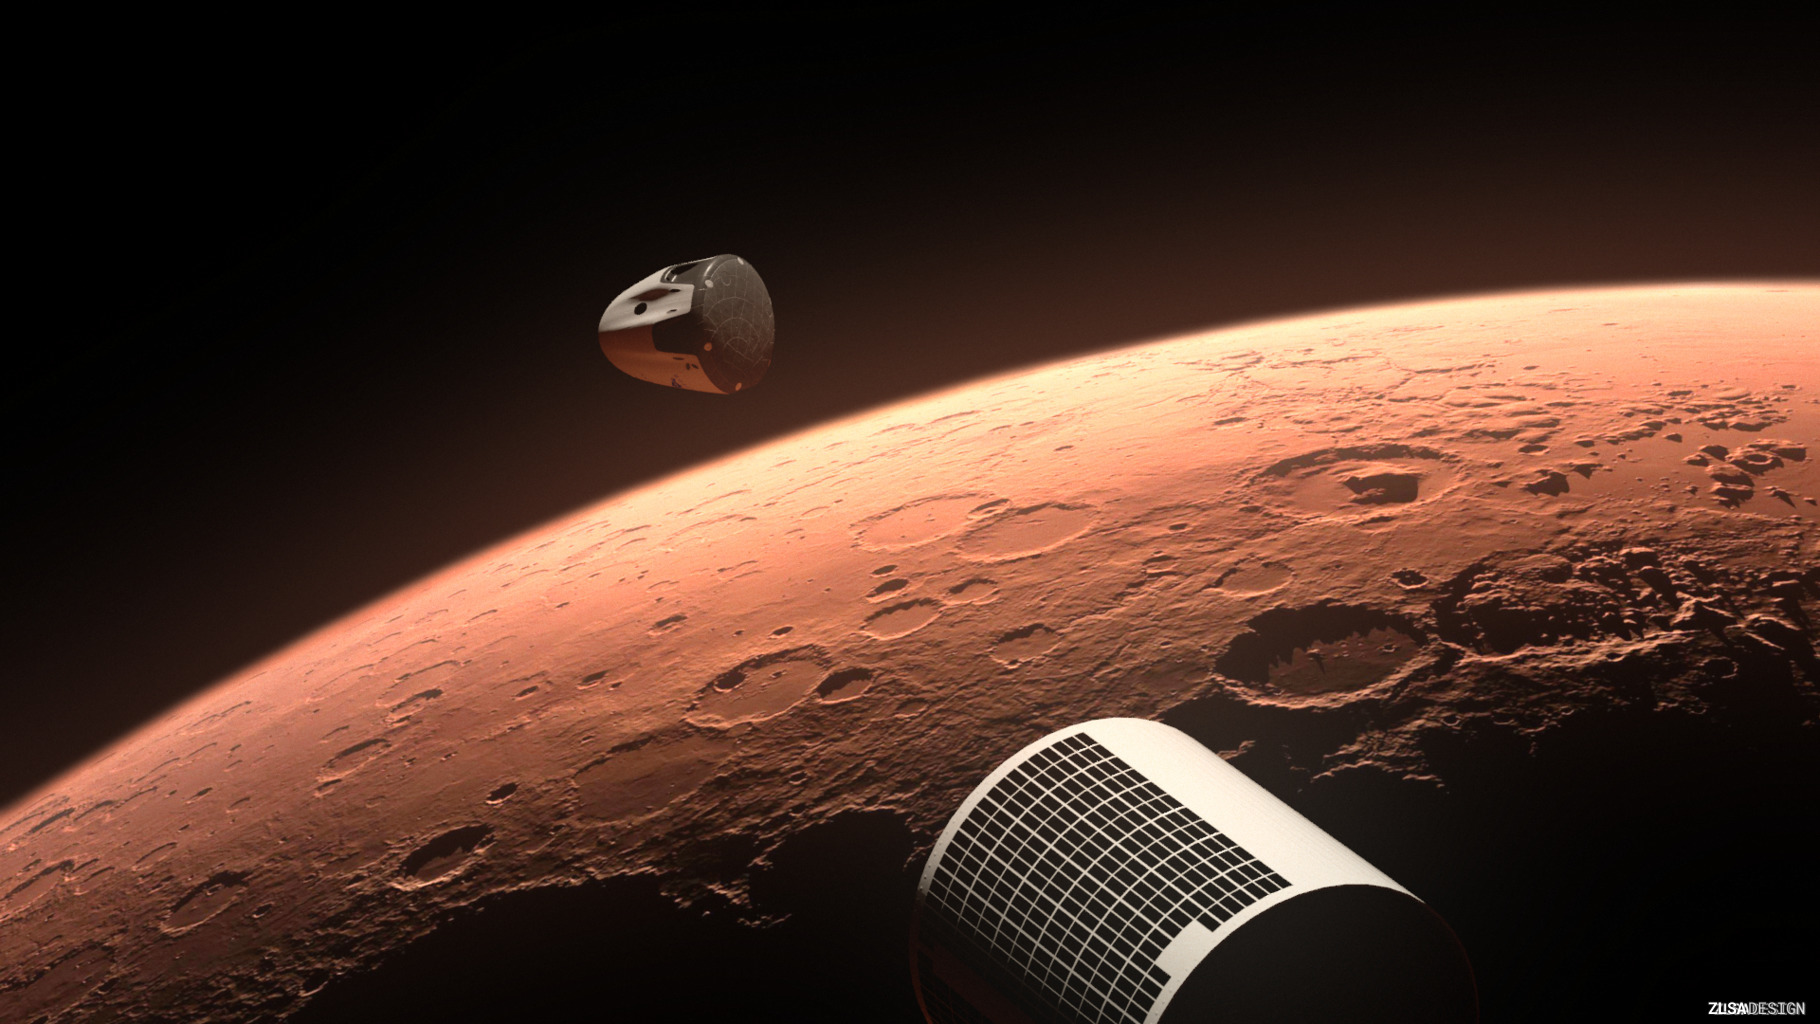 SpaceX Red Dragon at Mars